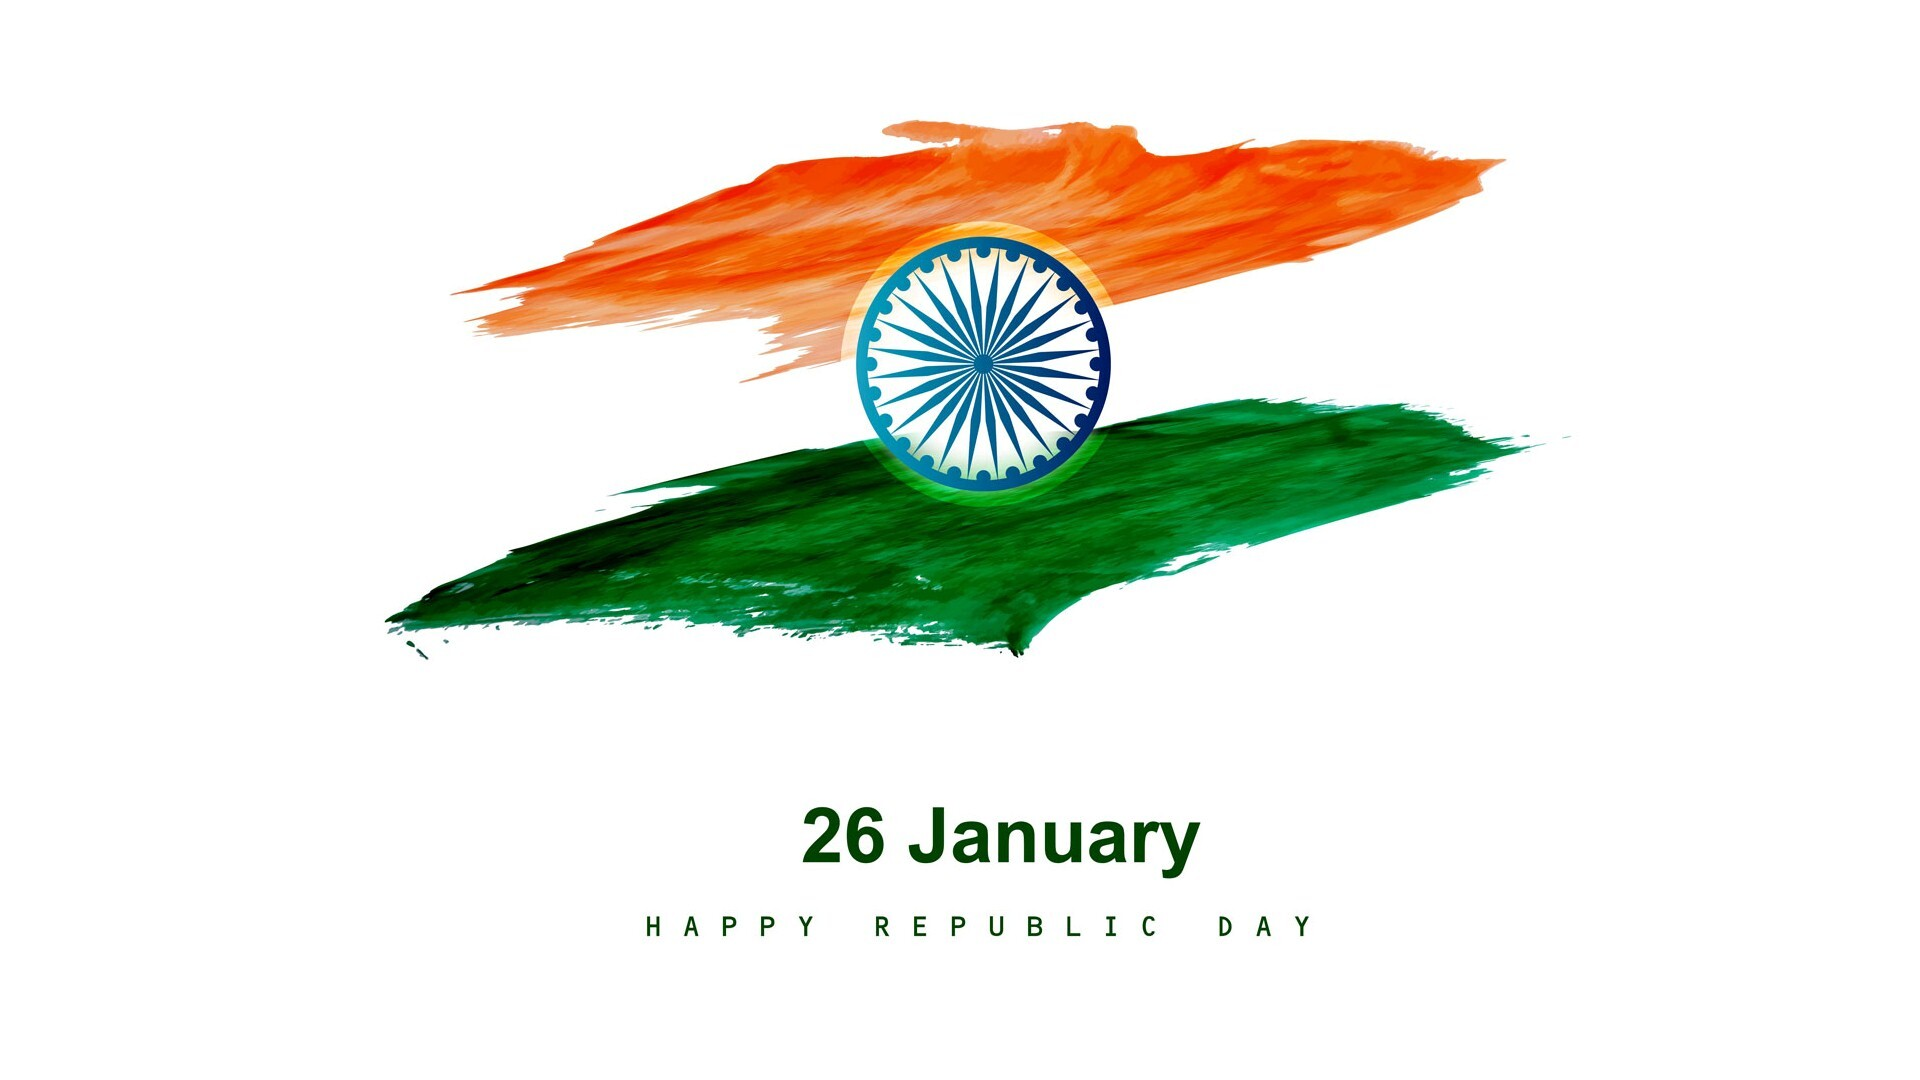 Republic Day Hd Wallpaper With Greeting Quote Hd Wallpapers